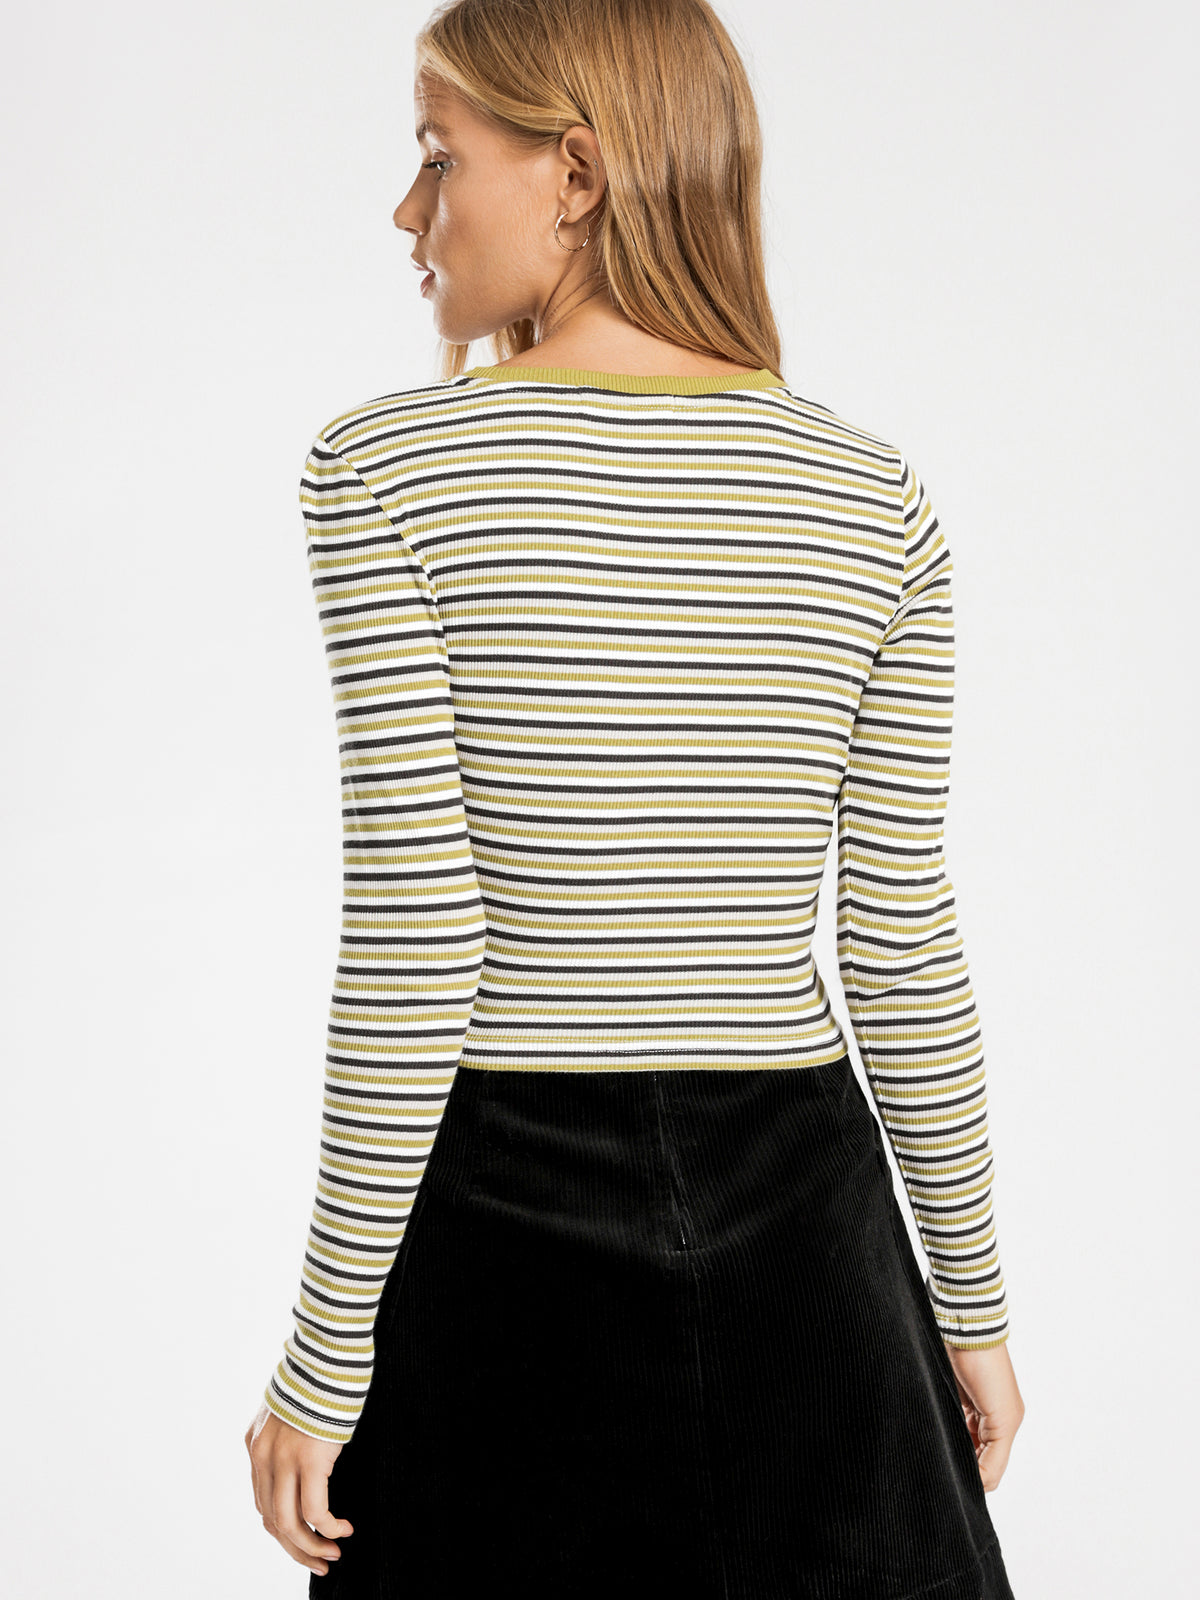 Haines Long Sleeve T-Shirt in Moss Stripe